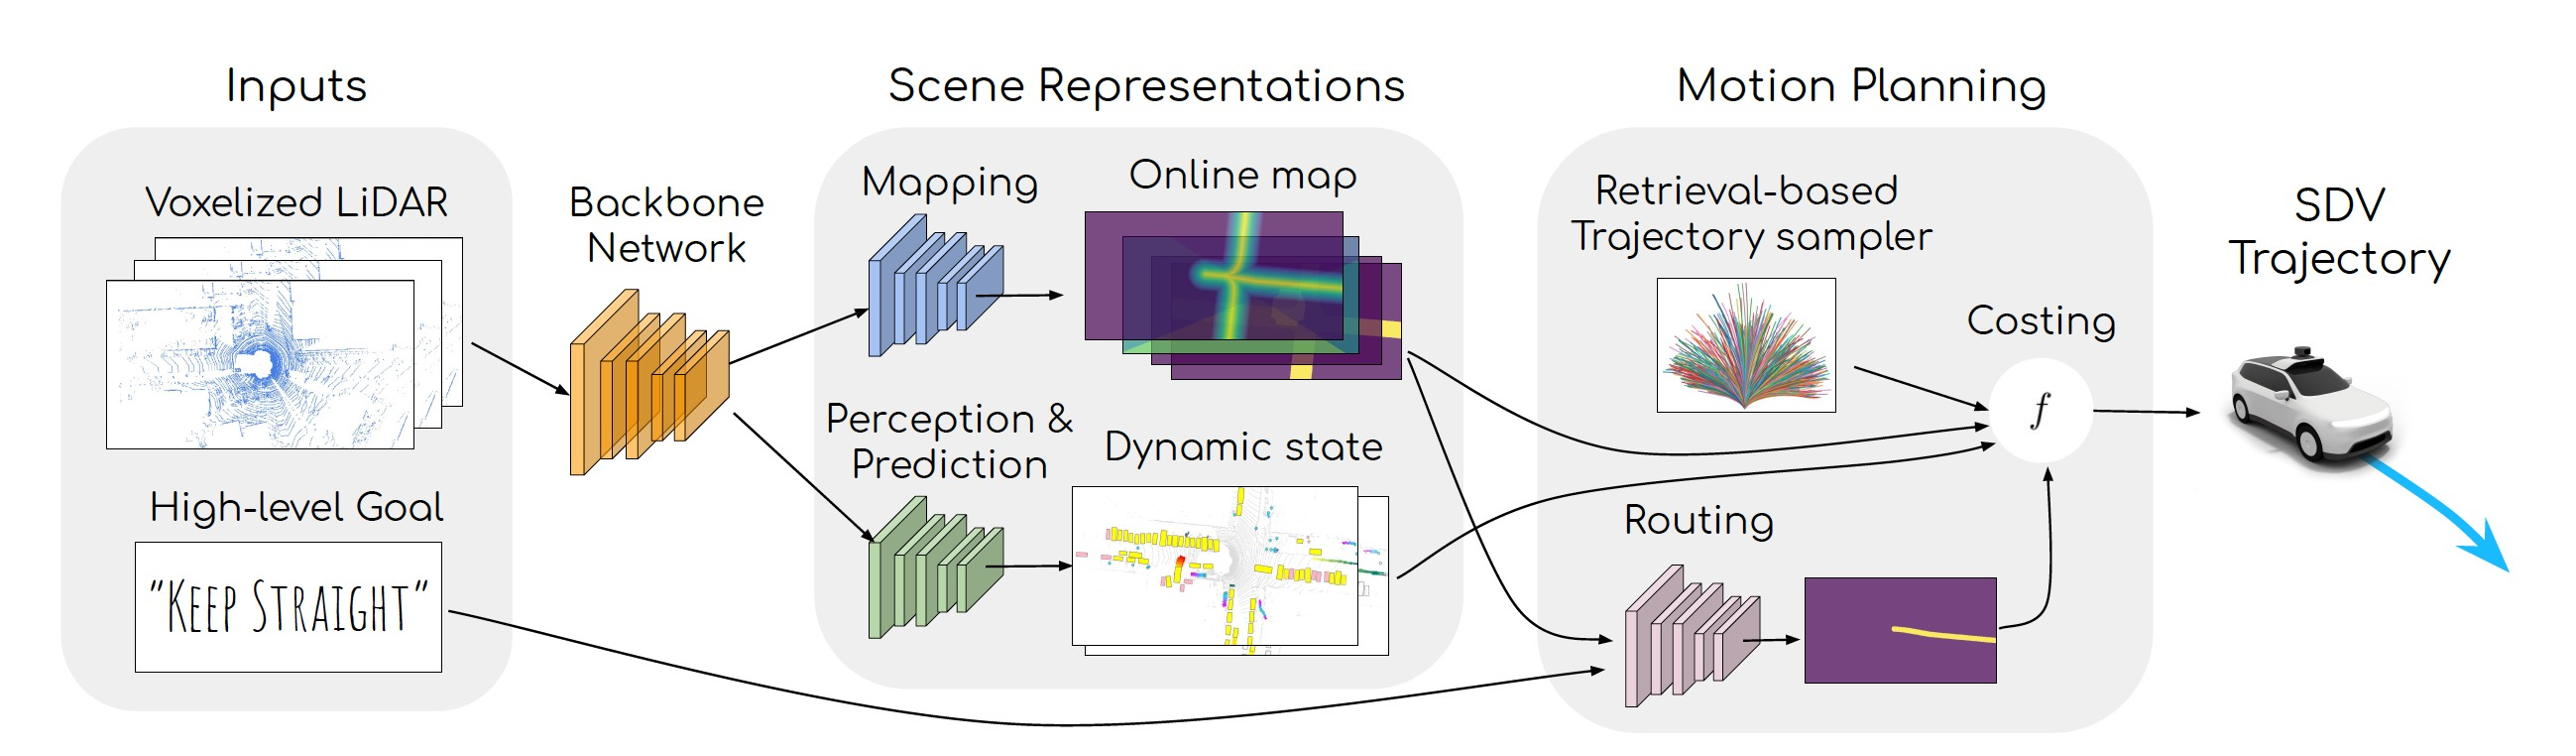 MP3 self-driving neural networks probablistic deep learning